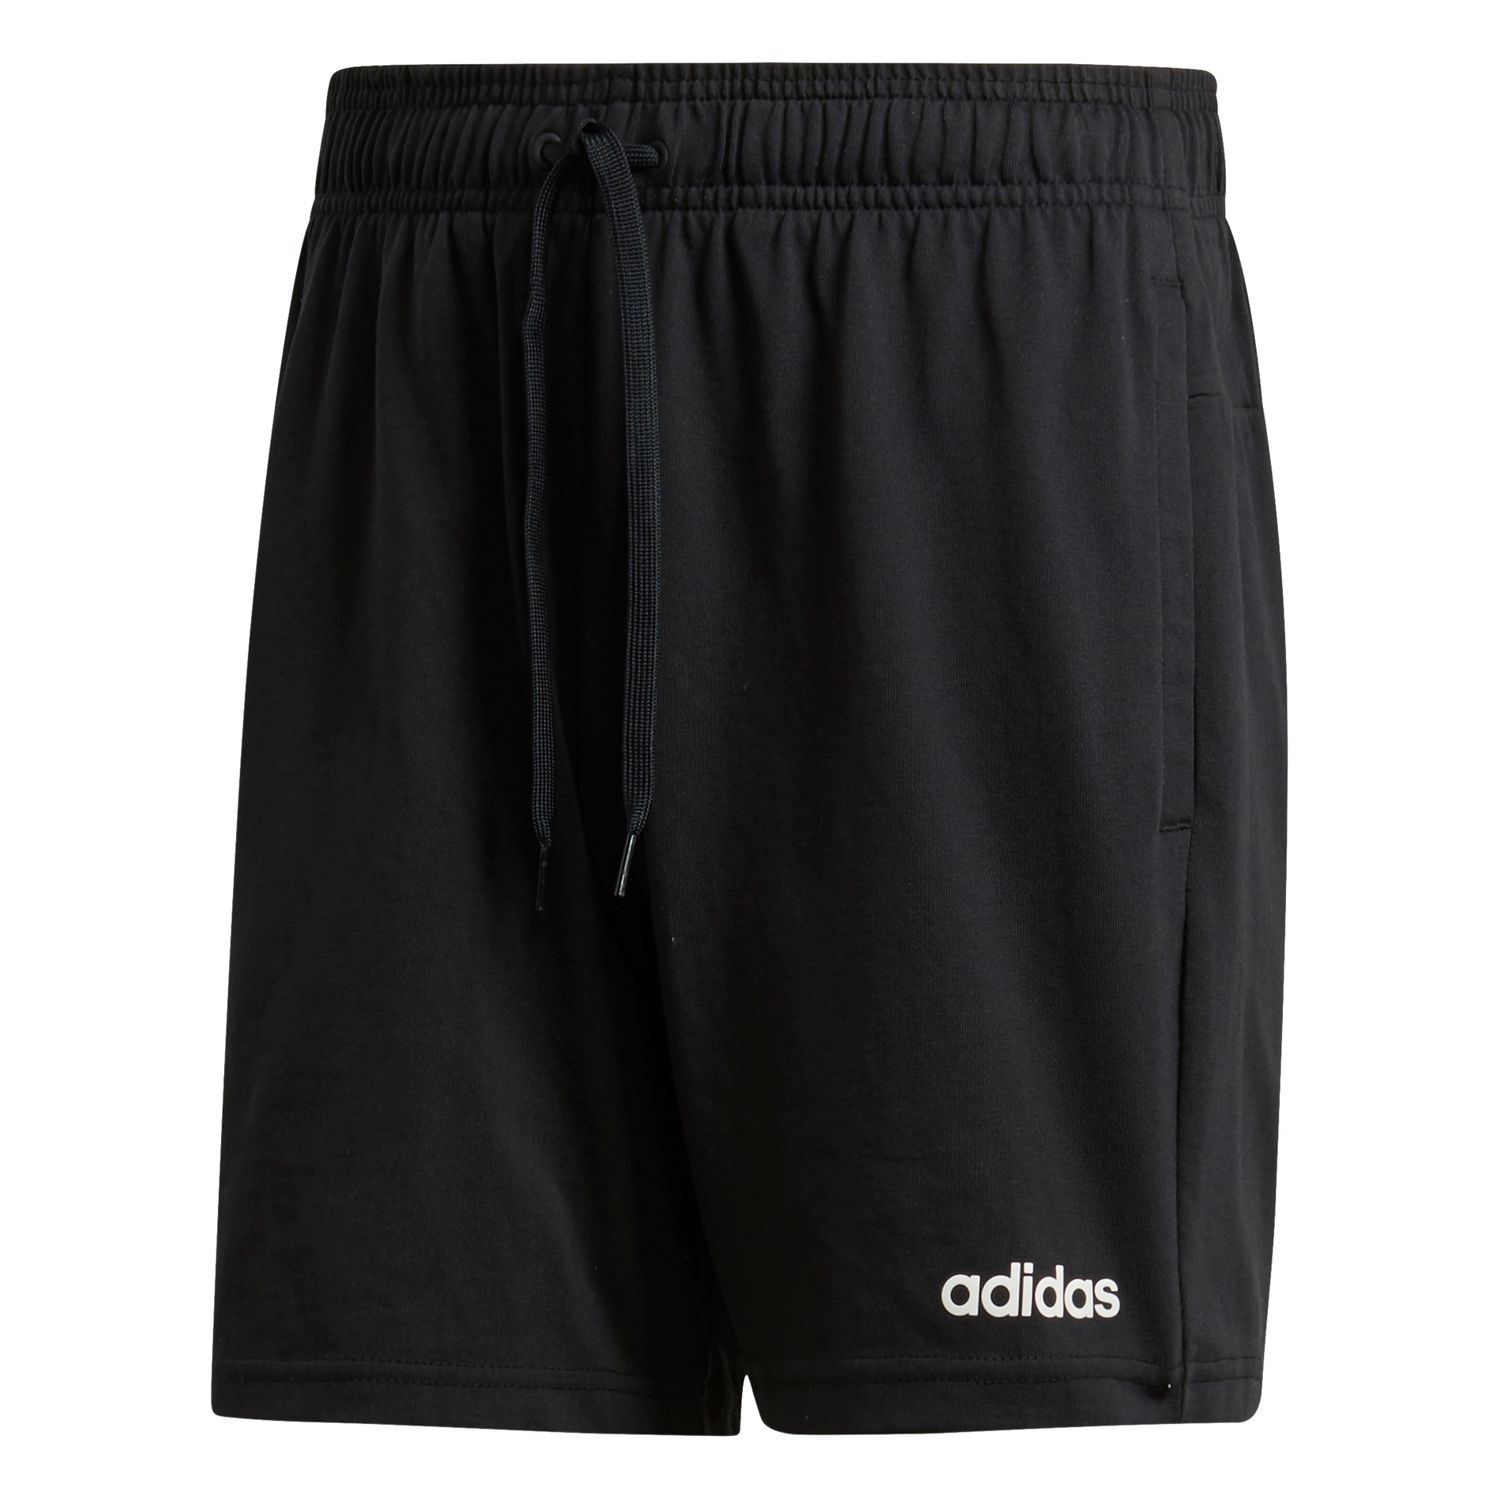 adidas Essentials Plain Single Jersey Herren Shorts – Bild 1